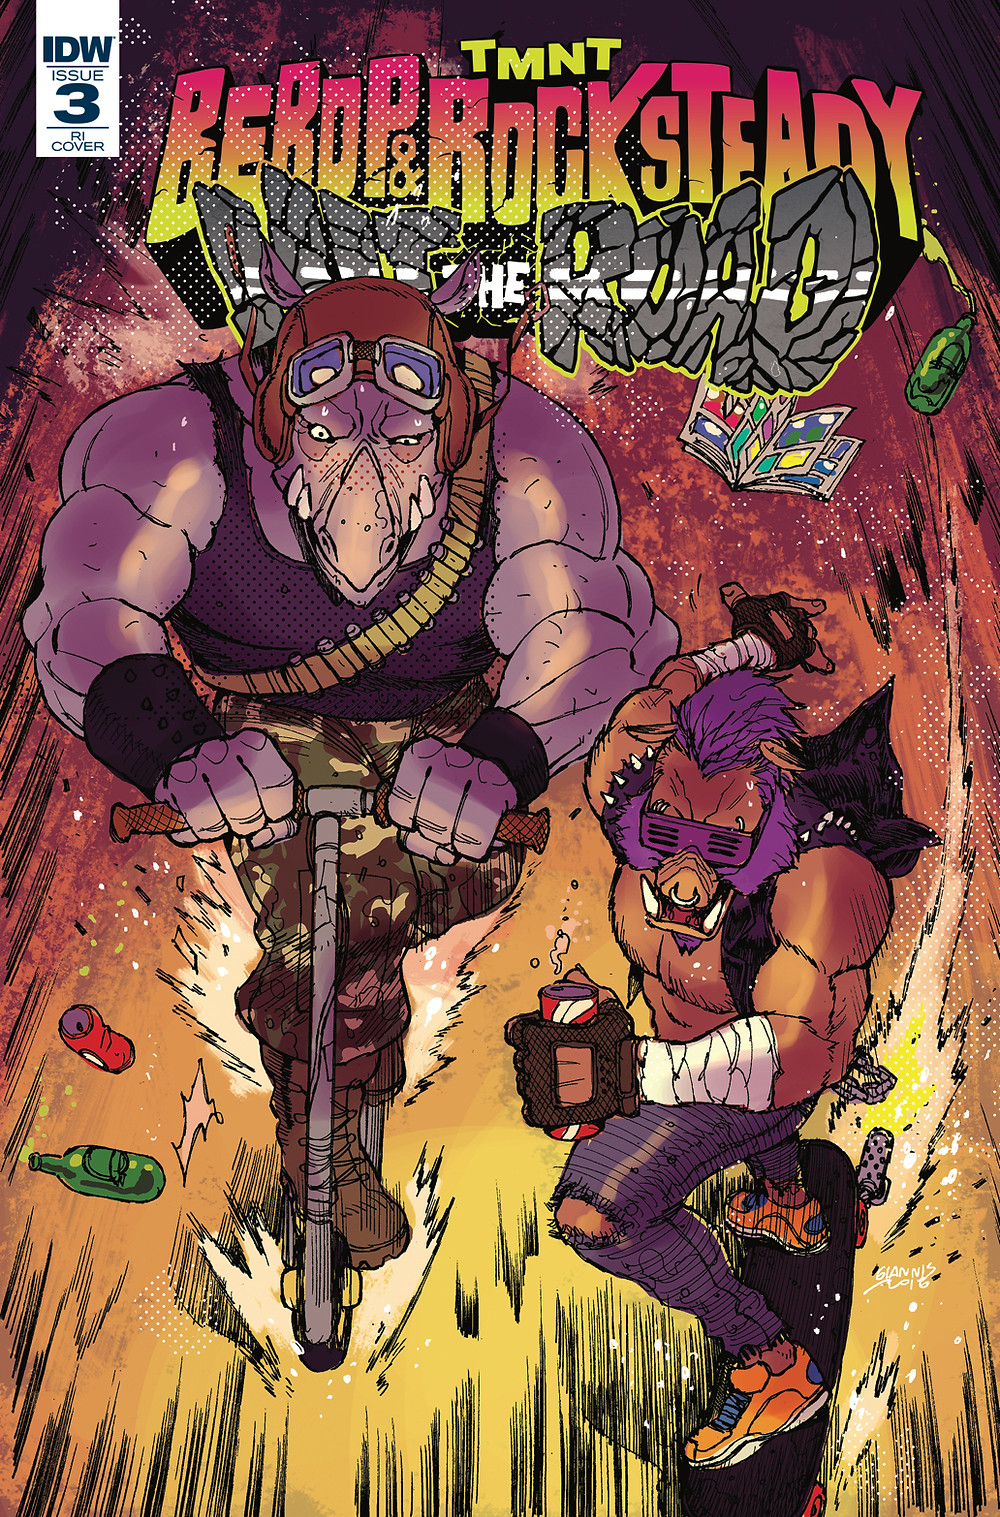 Bebop & Rocksteady: Hit the Road #3 Retailer incentive cover by Milonogiannis, Giannis